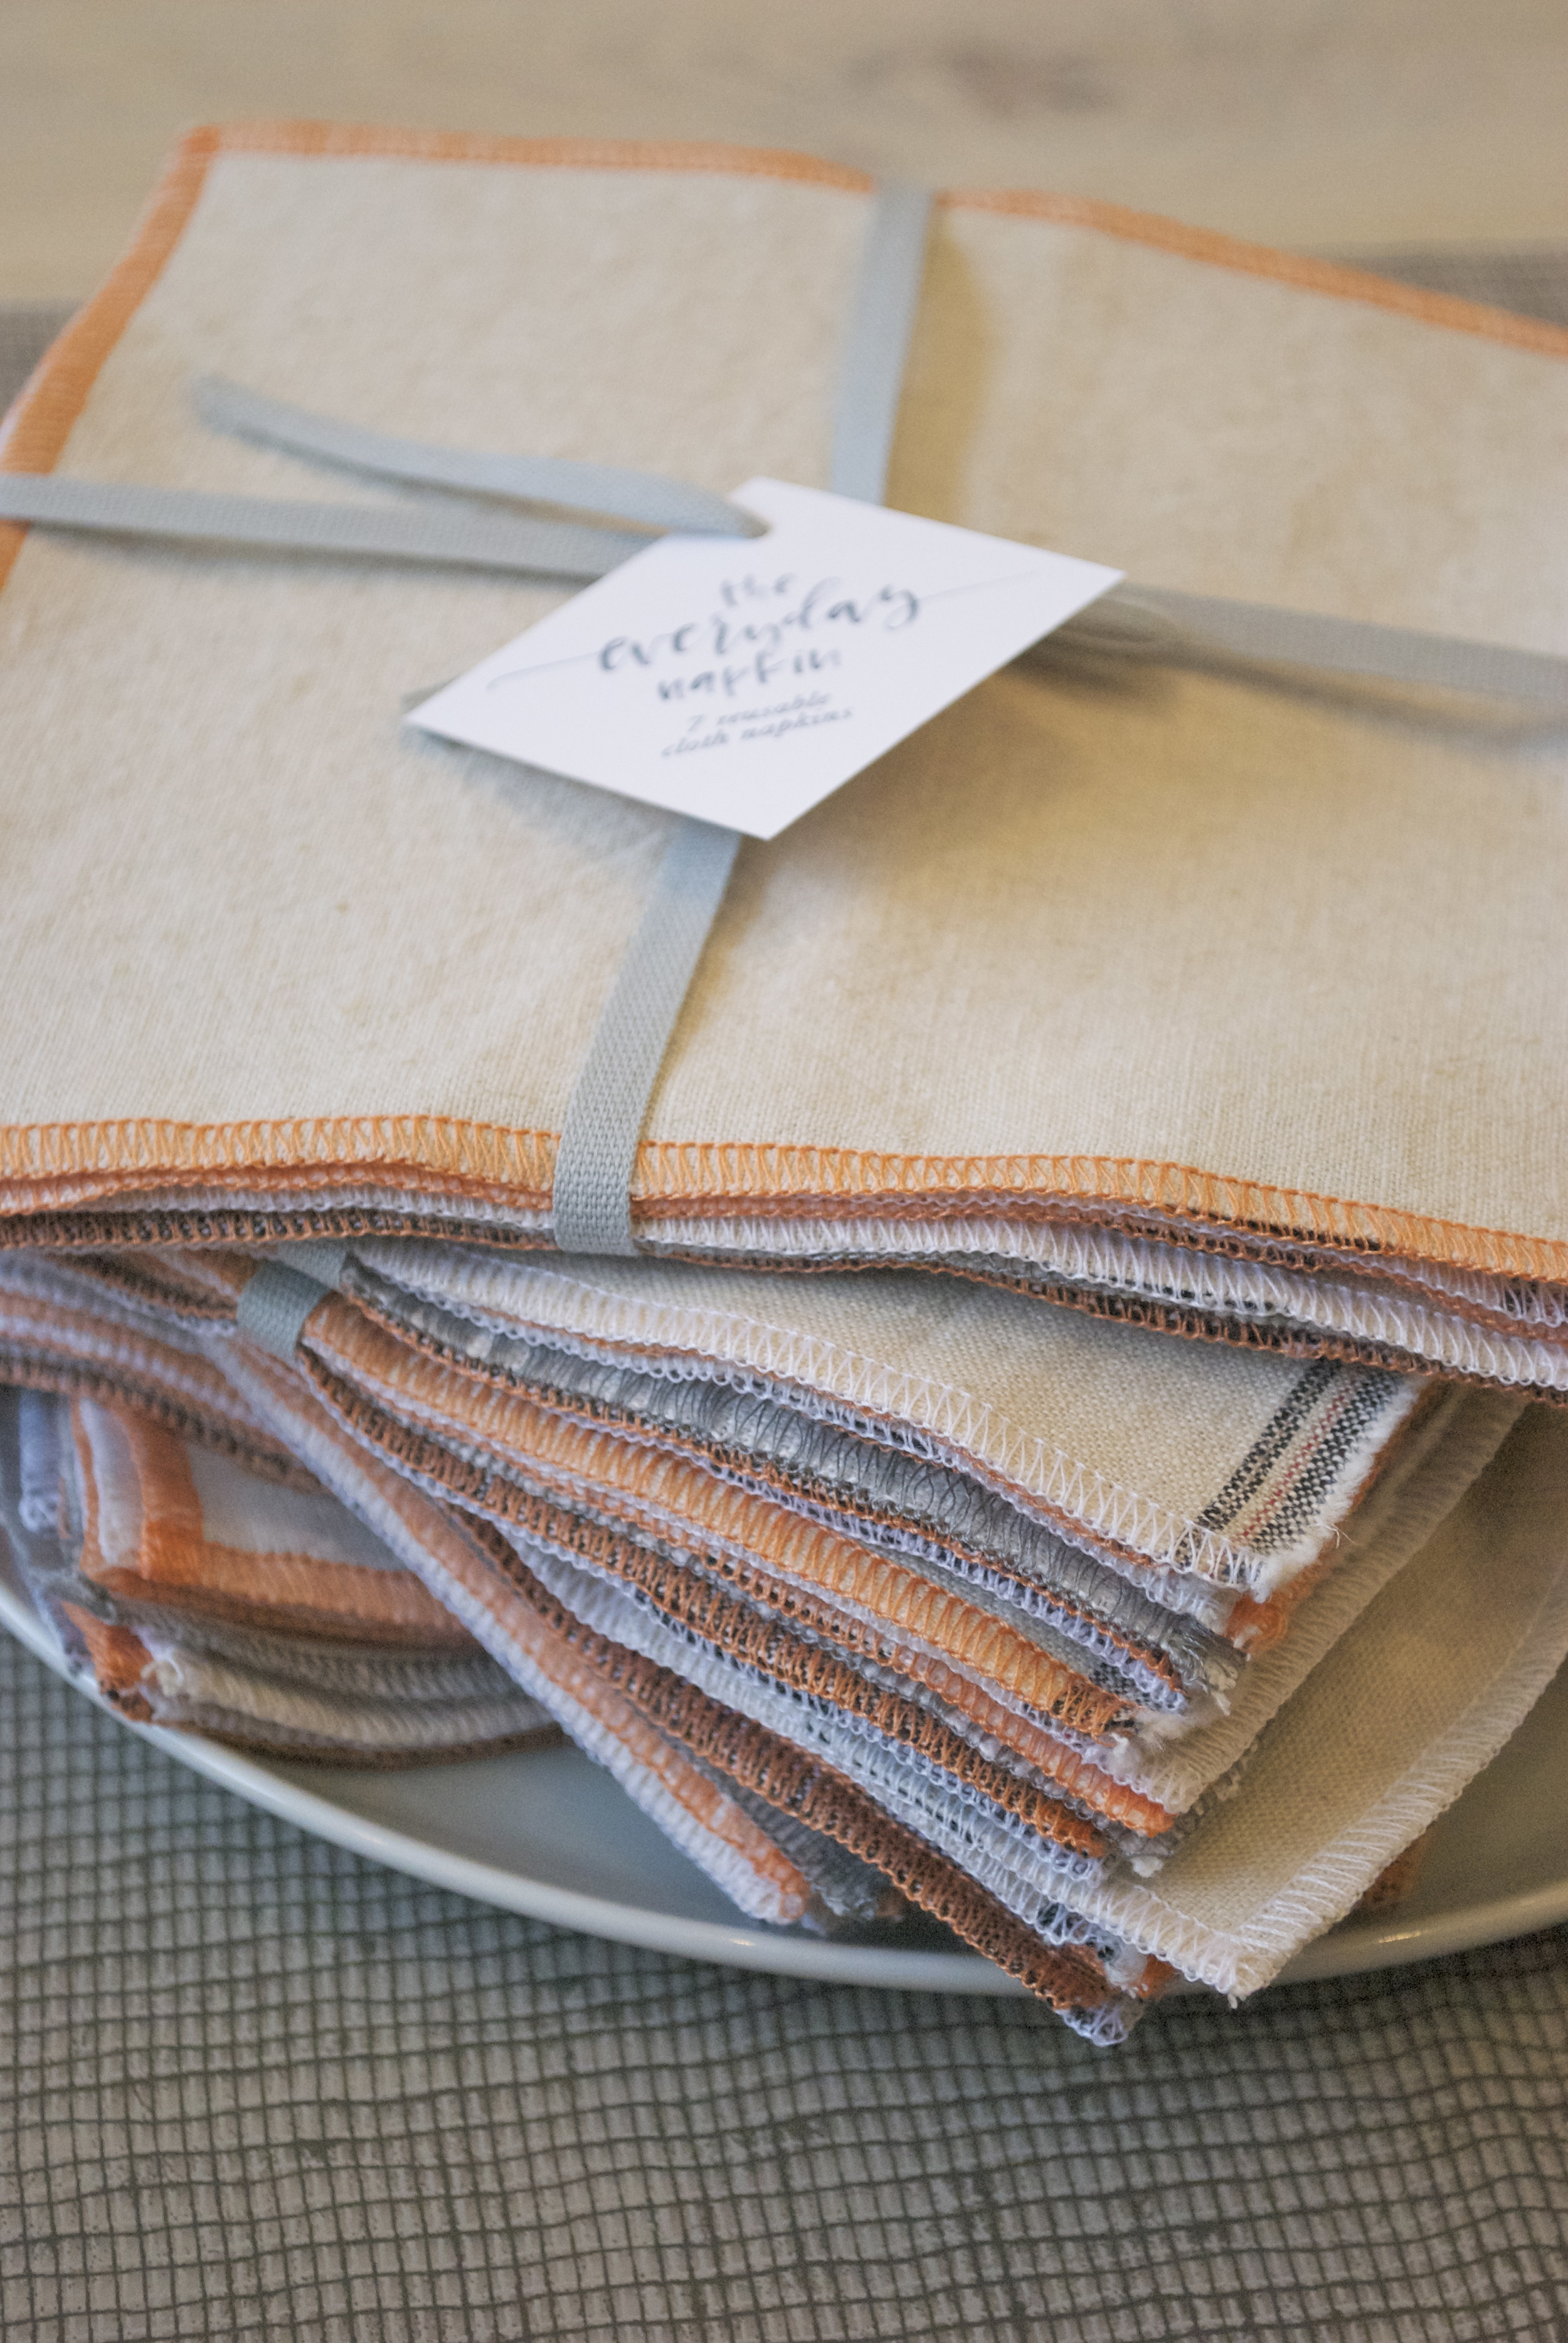 greentail-table-newton-ma-tabletop-cloth-napkins-everyday